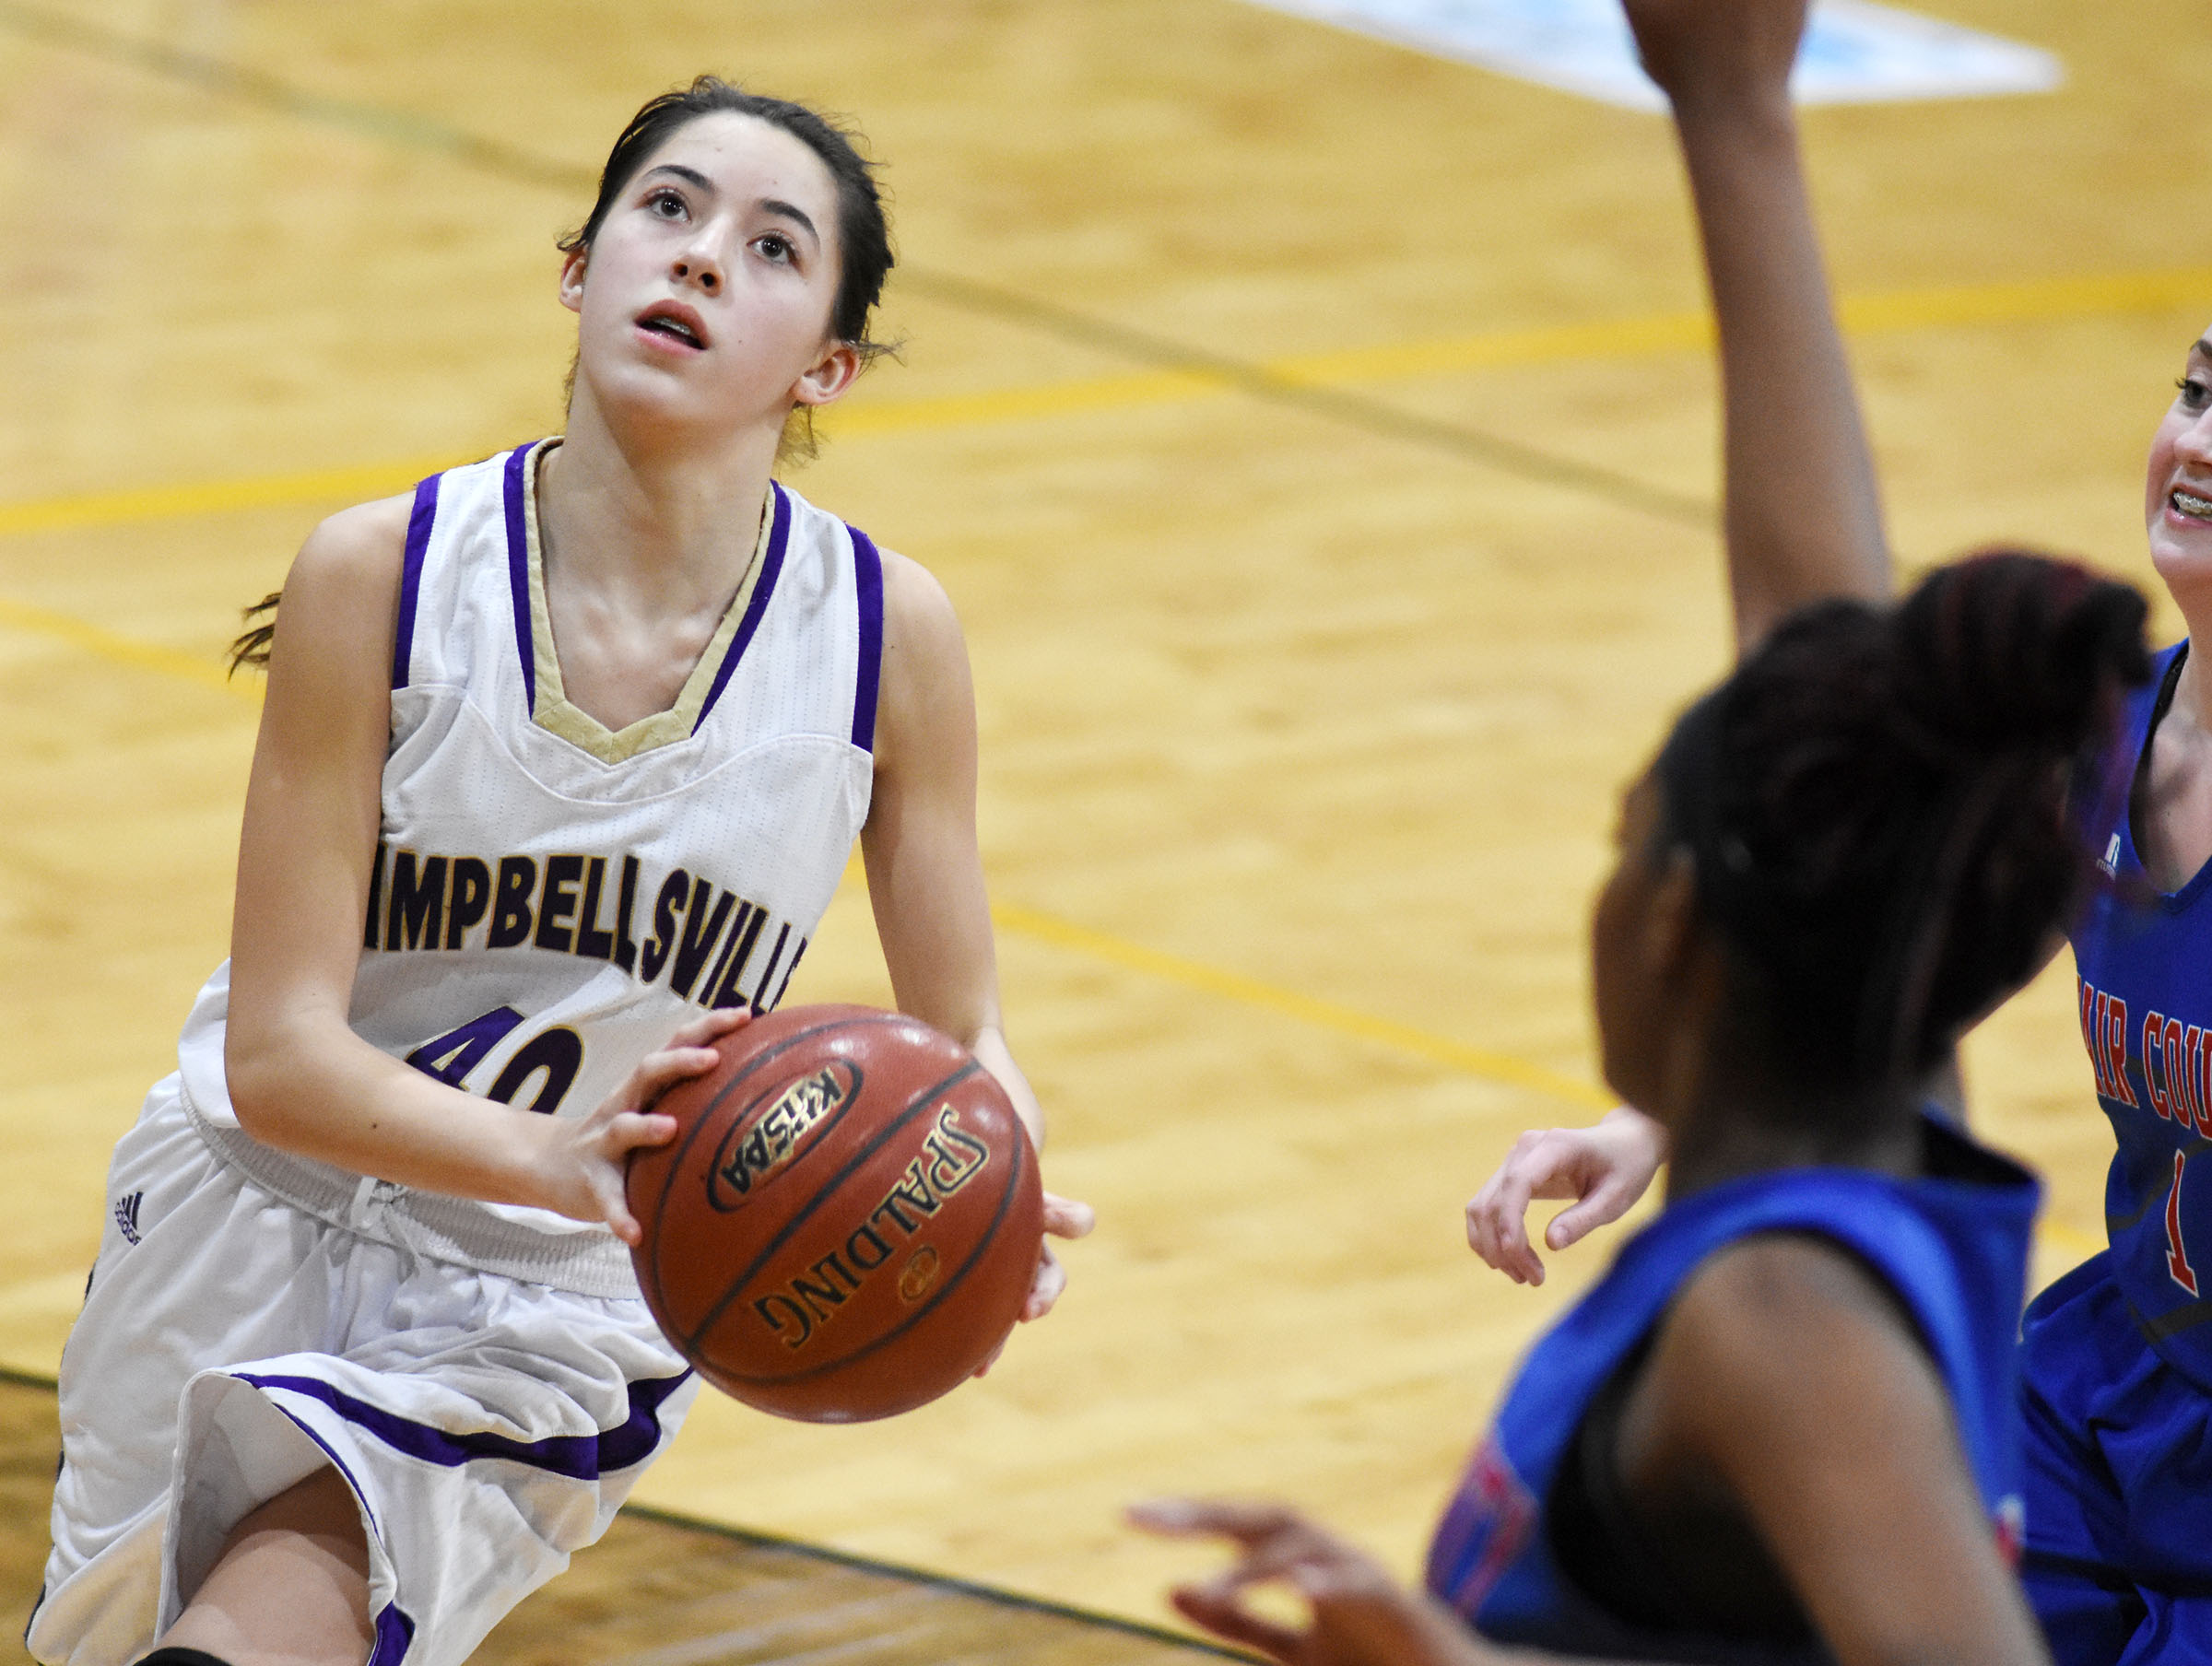 Campbellsville Middle School eighth-grader Kaylyn Smith shoots.